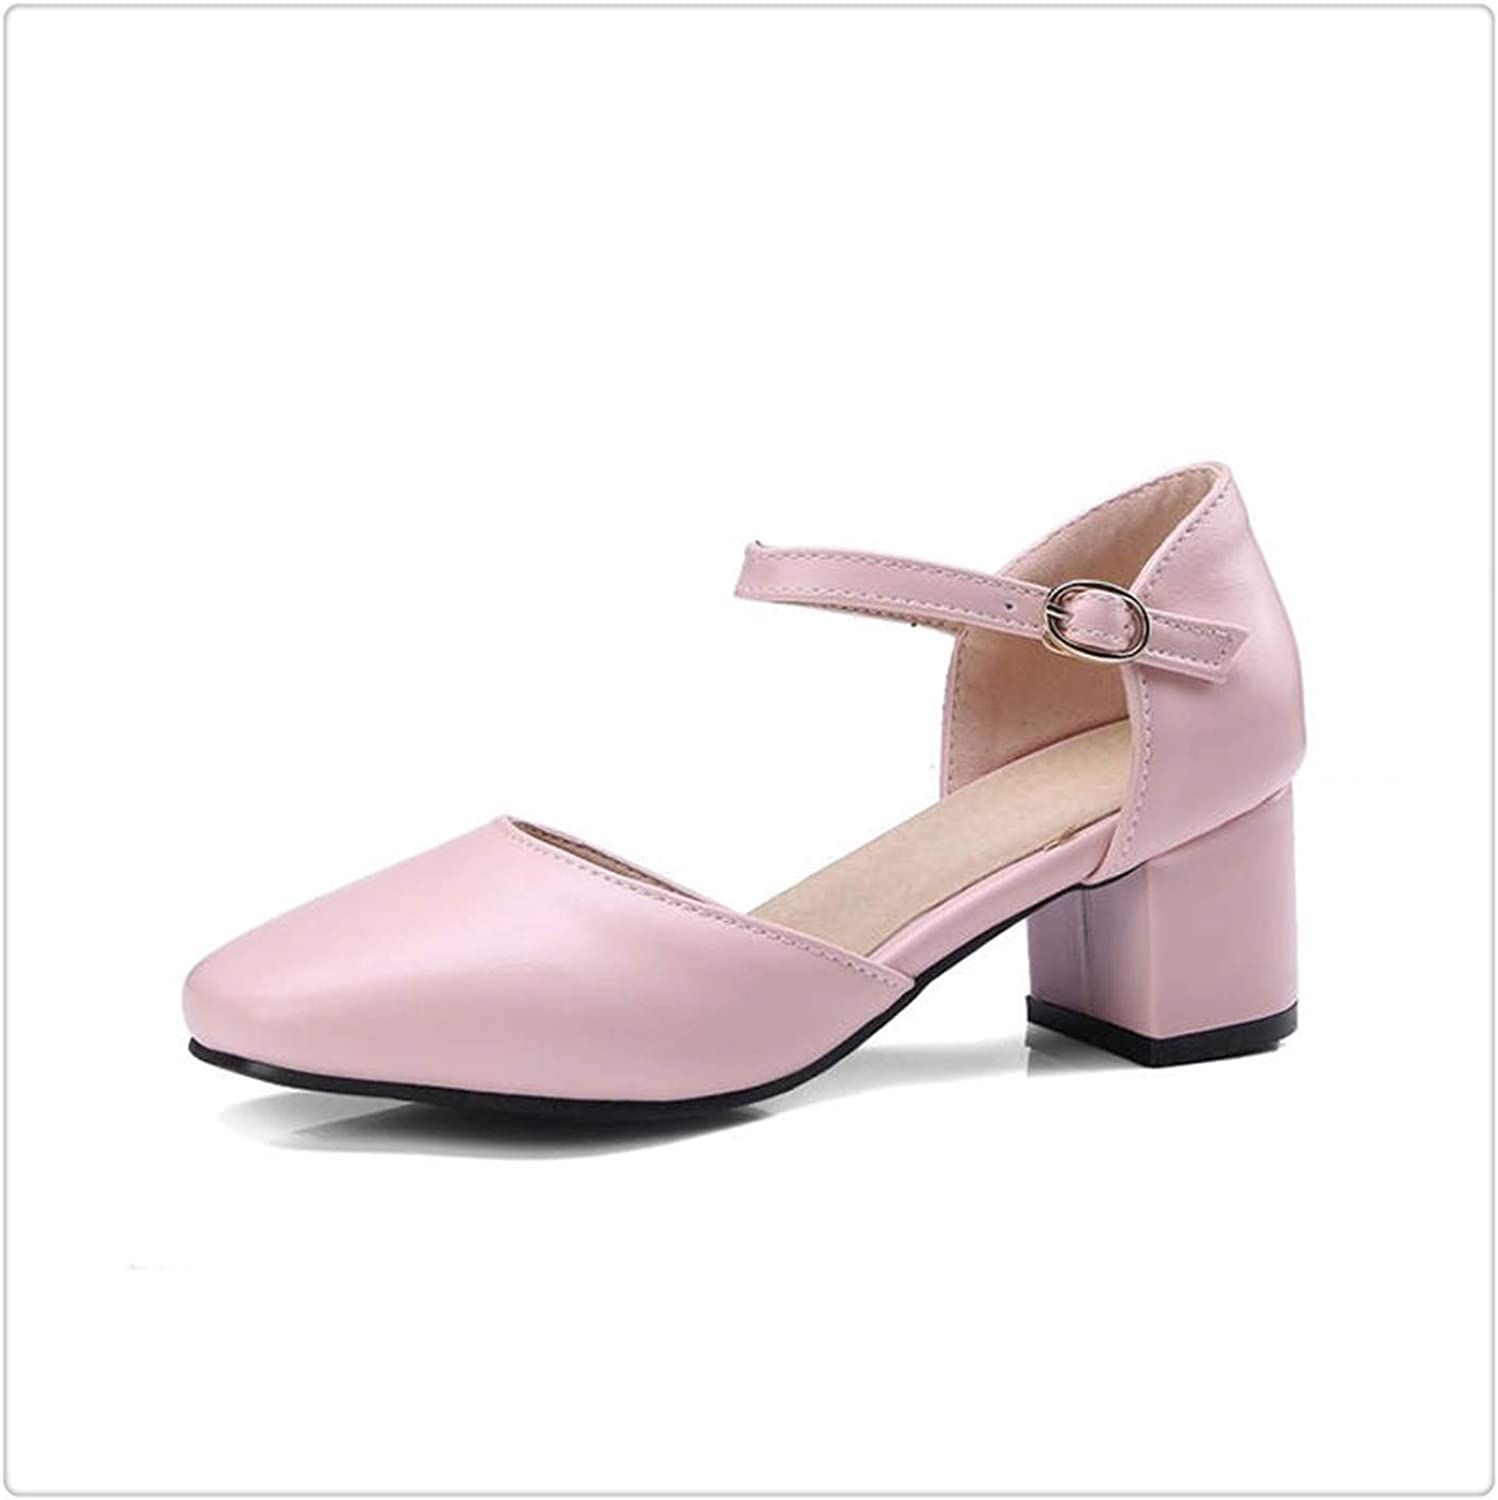 Yyixianma New Plus Size 33-48 Ankle-Strap Summer shoes Women Sandals Fashion Square Heels Office Lady Sandals Woman Pink 10